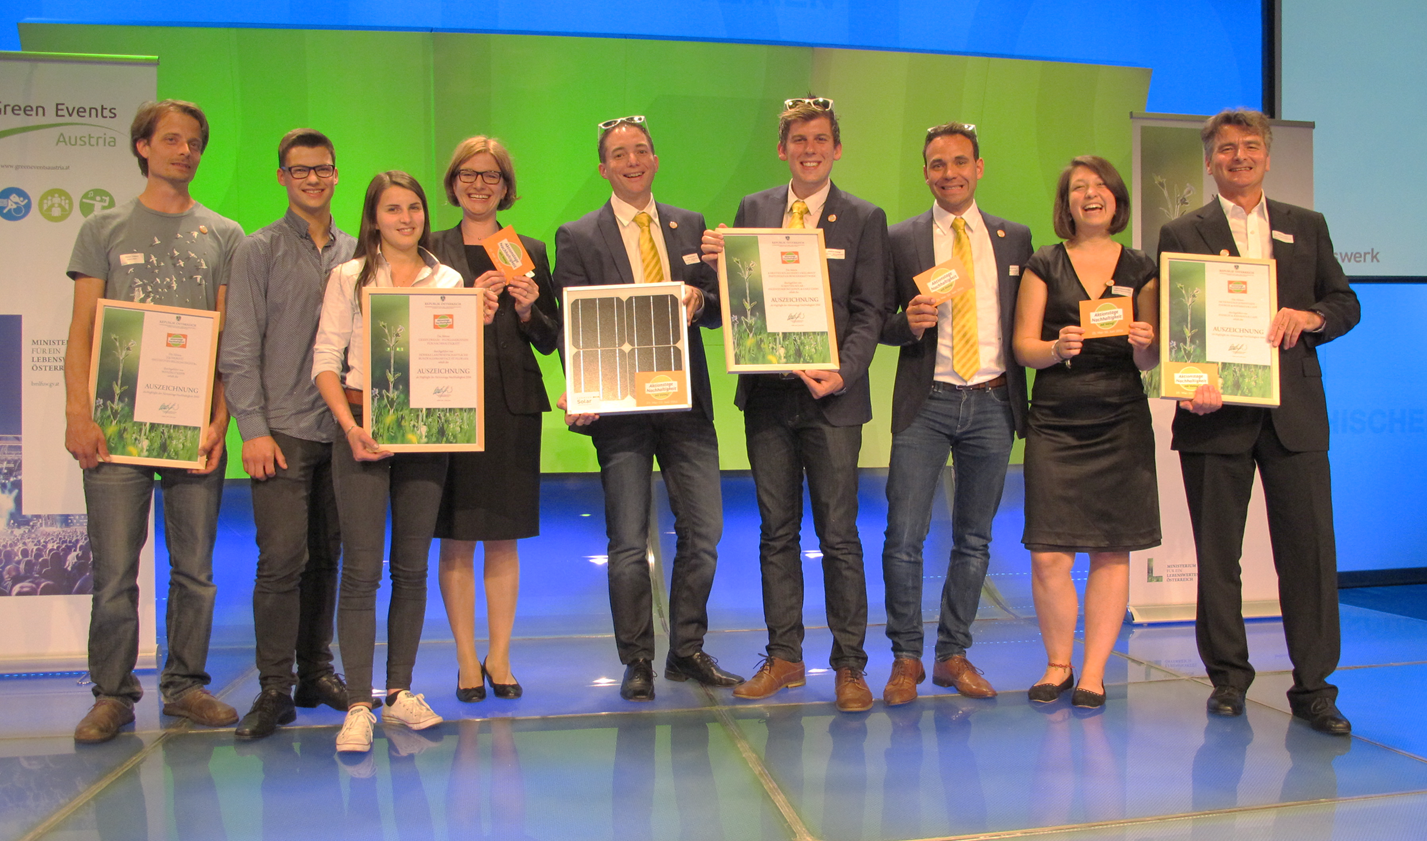 Die Aktionstage-Highlights 2016 bei der Green Events Austria Gala